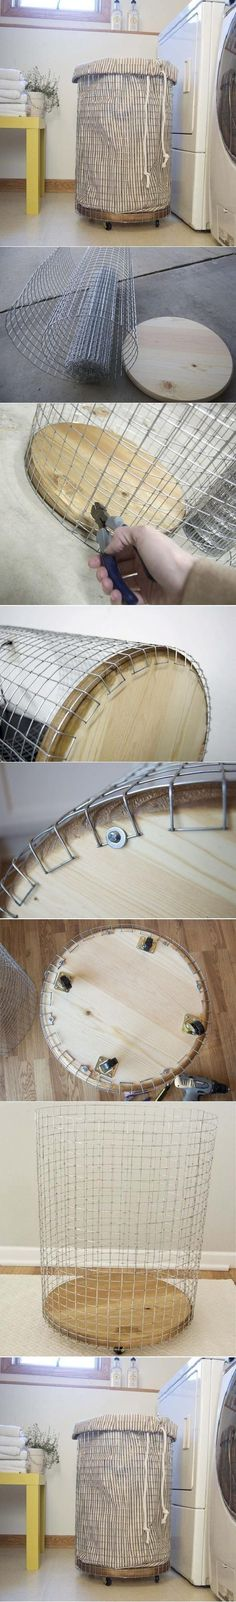 DIY Easy Laundry Basket